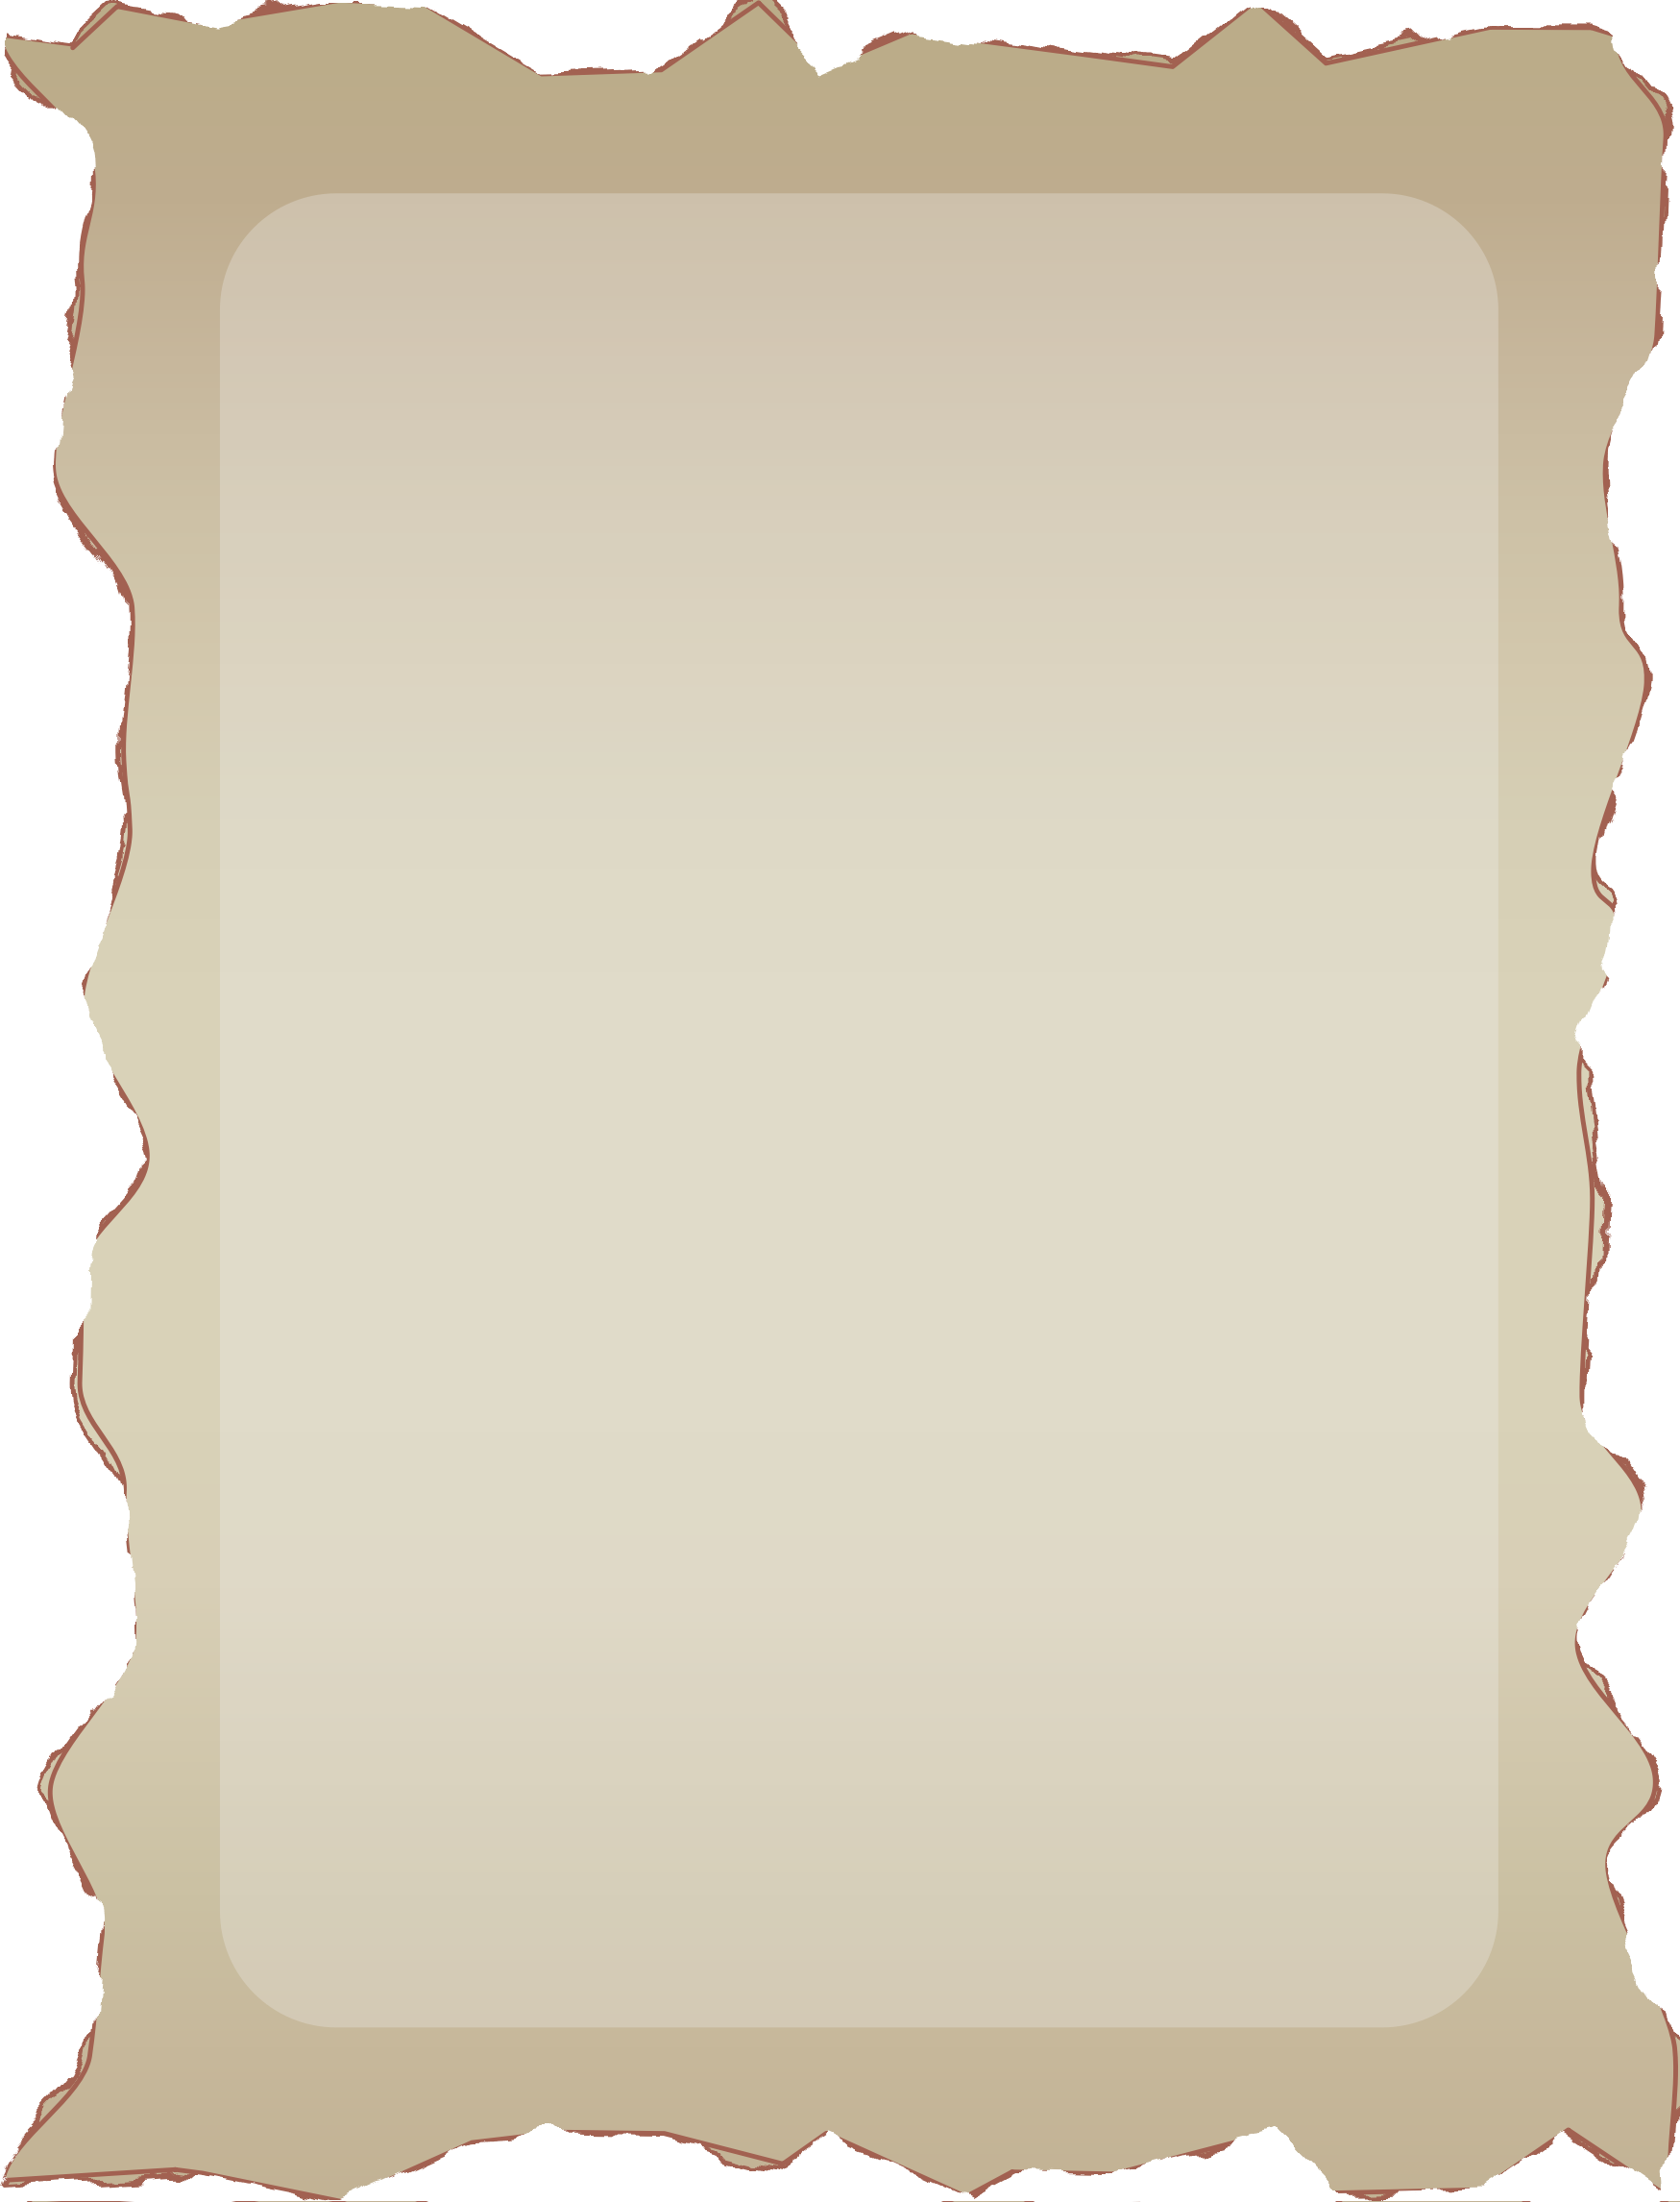 Parchment border png. Icons free and downloads